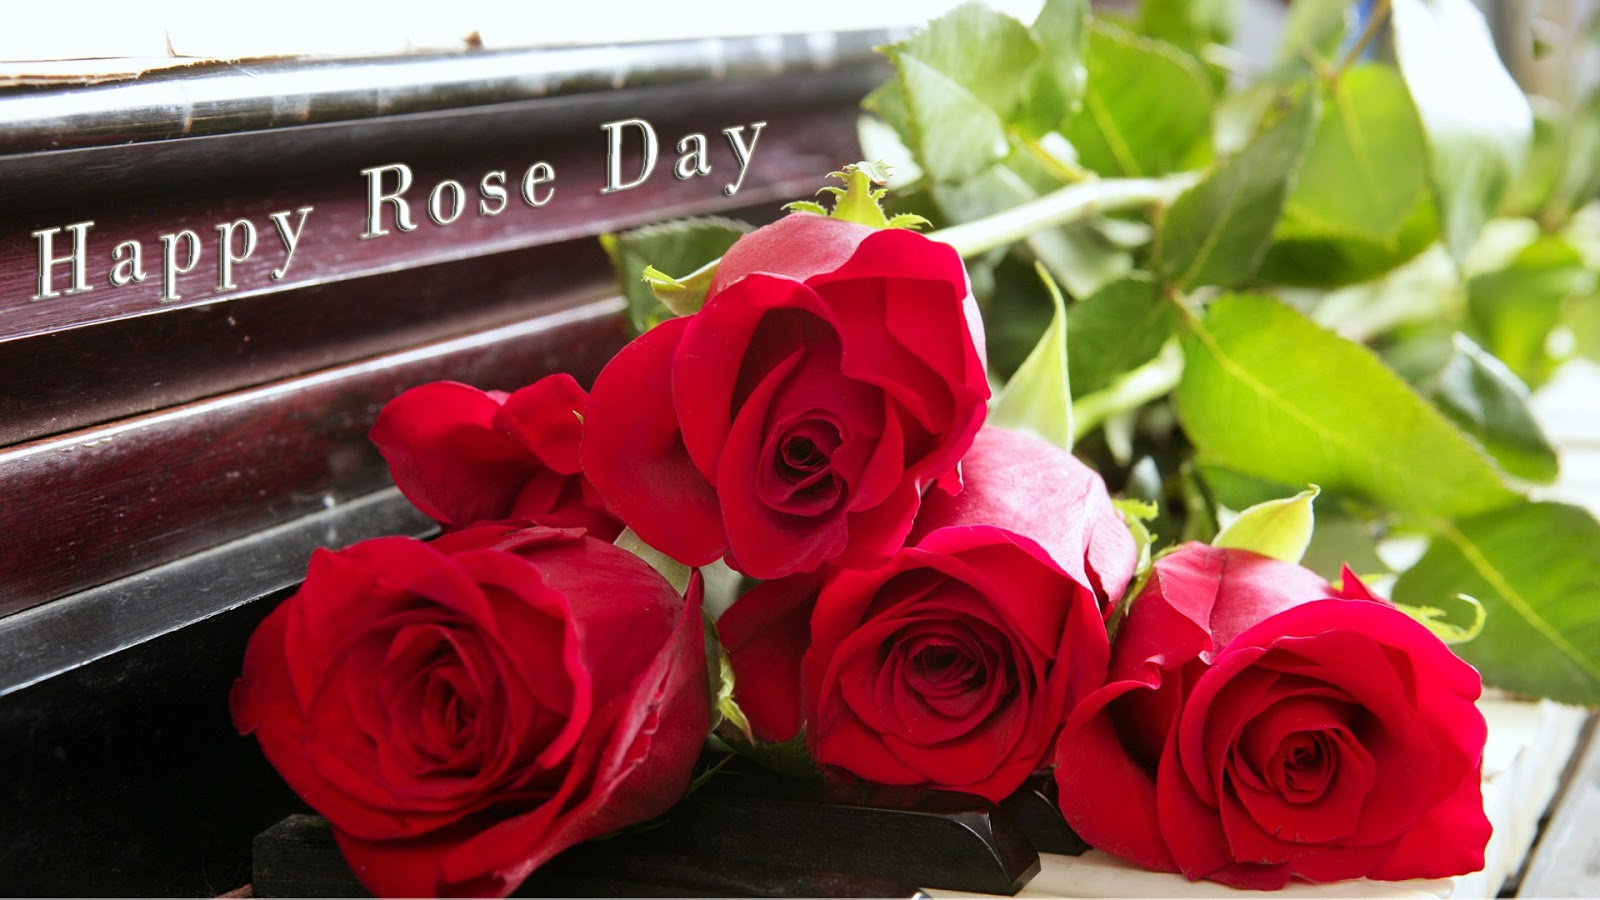 Happy Rose Day Images Pictures Wallpapers 2020 Hd